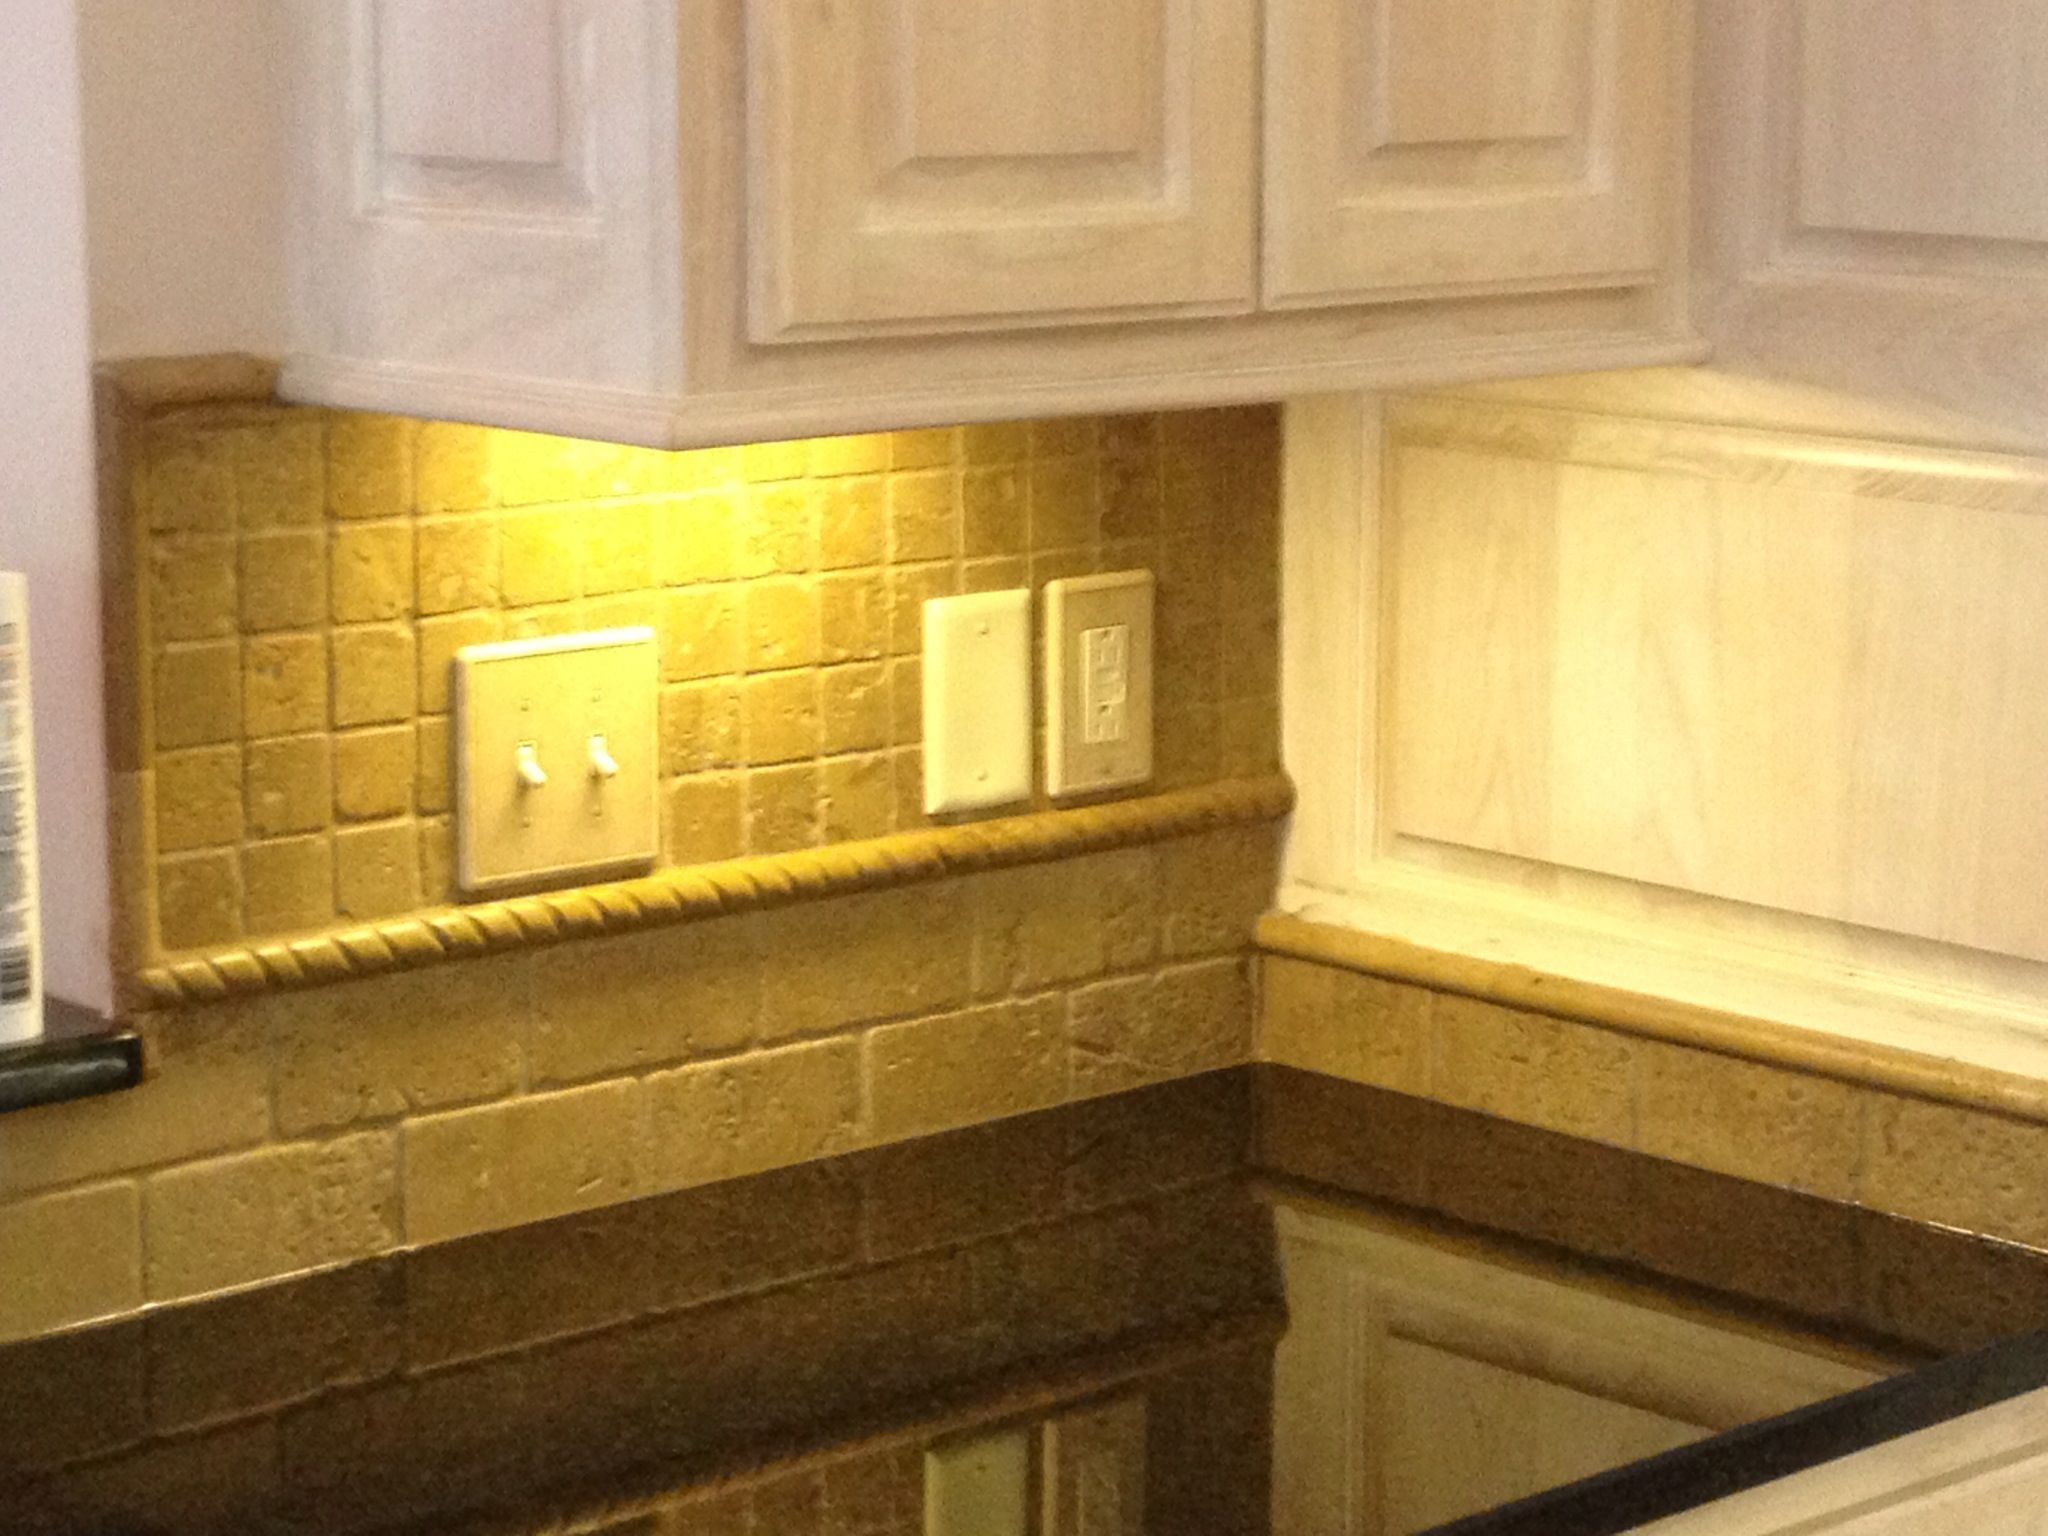 Tumbled travertine backsplash ideas kitchen travertine for Travertine tile designs